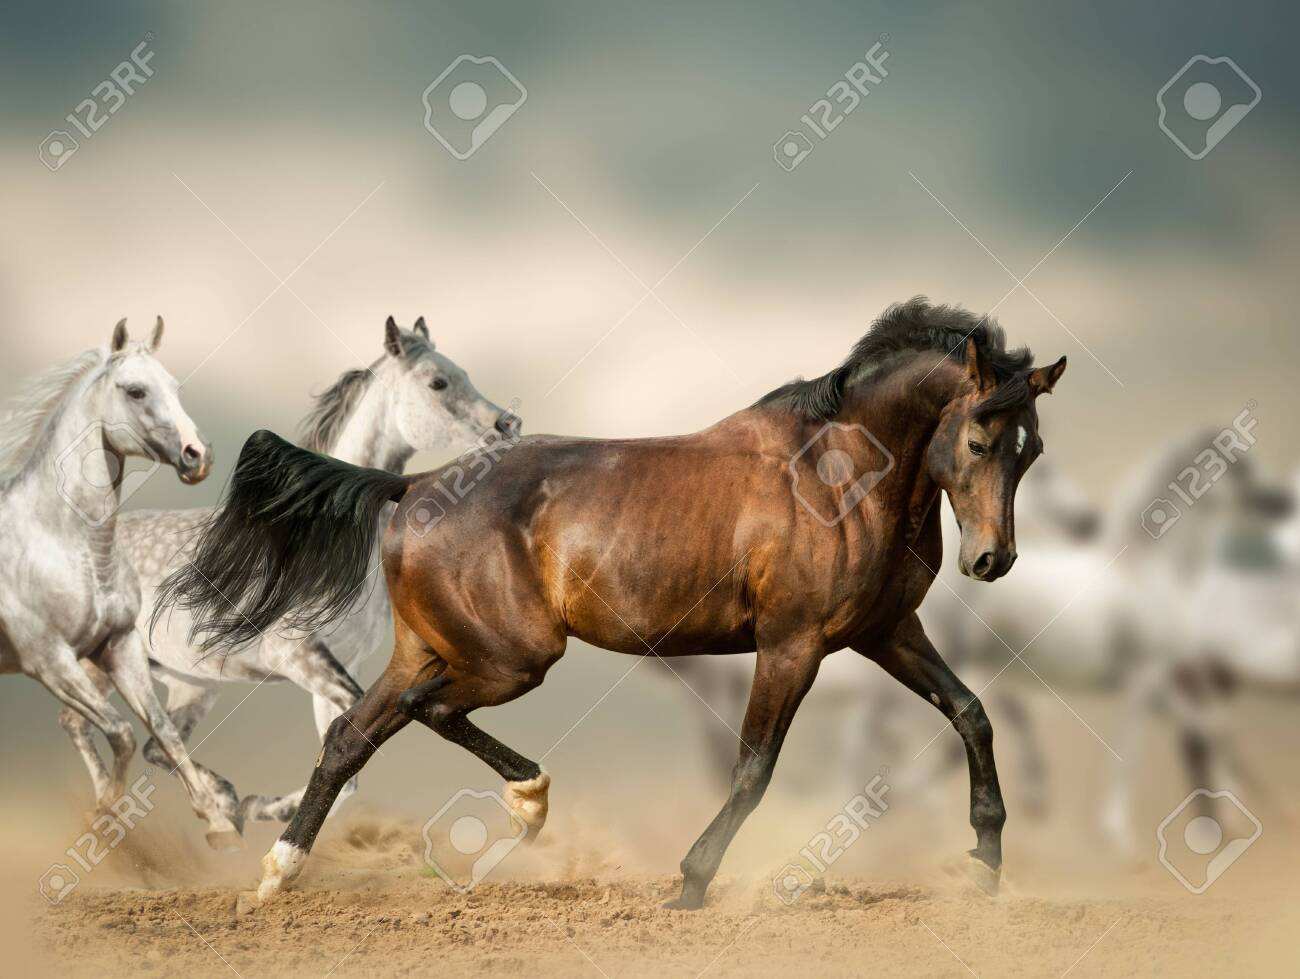 Beautiful Horses In Desert Running Wild Stock Photo Picture And Royalty Free Image Image 130005934